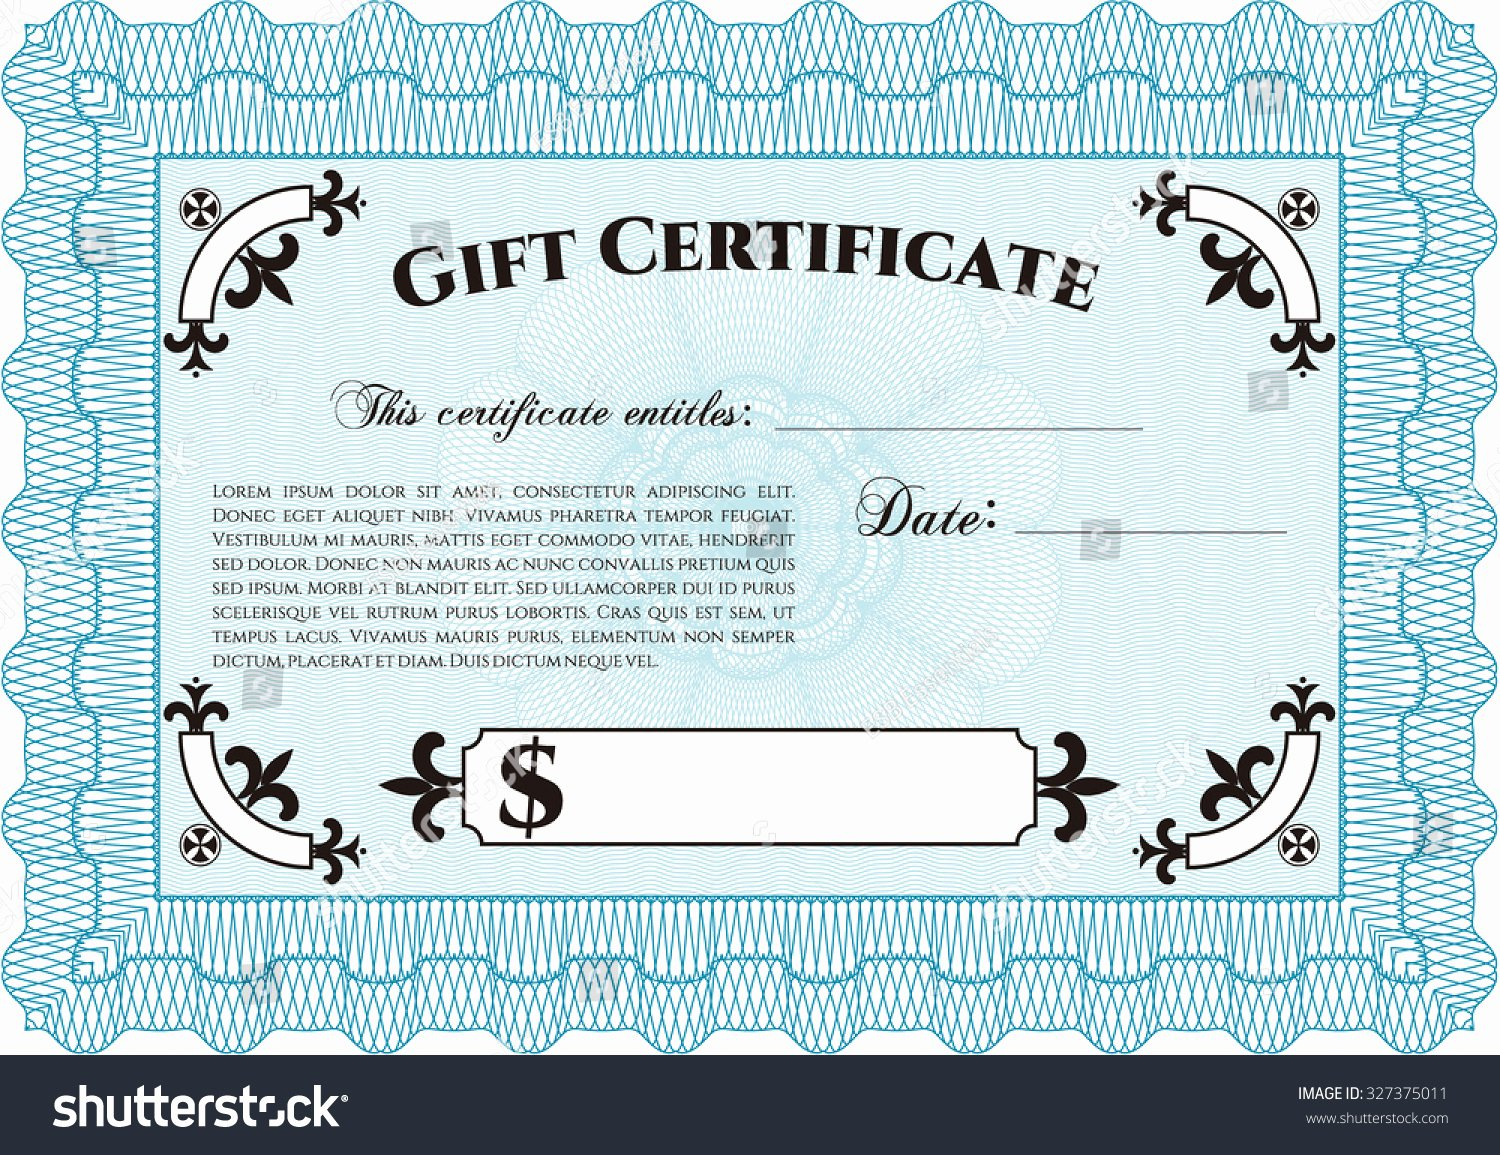 Gift Certificate Template Vector Awesome formal Gift Certificate Template Customizable Easy Stock